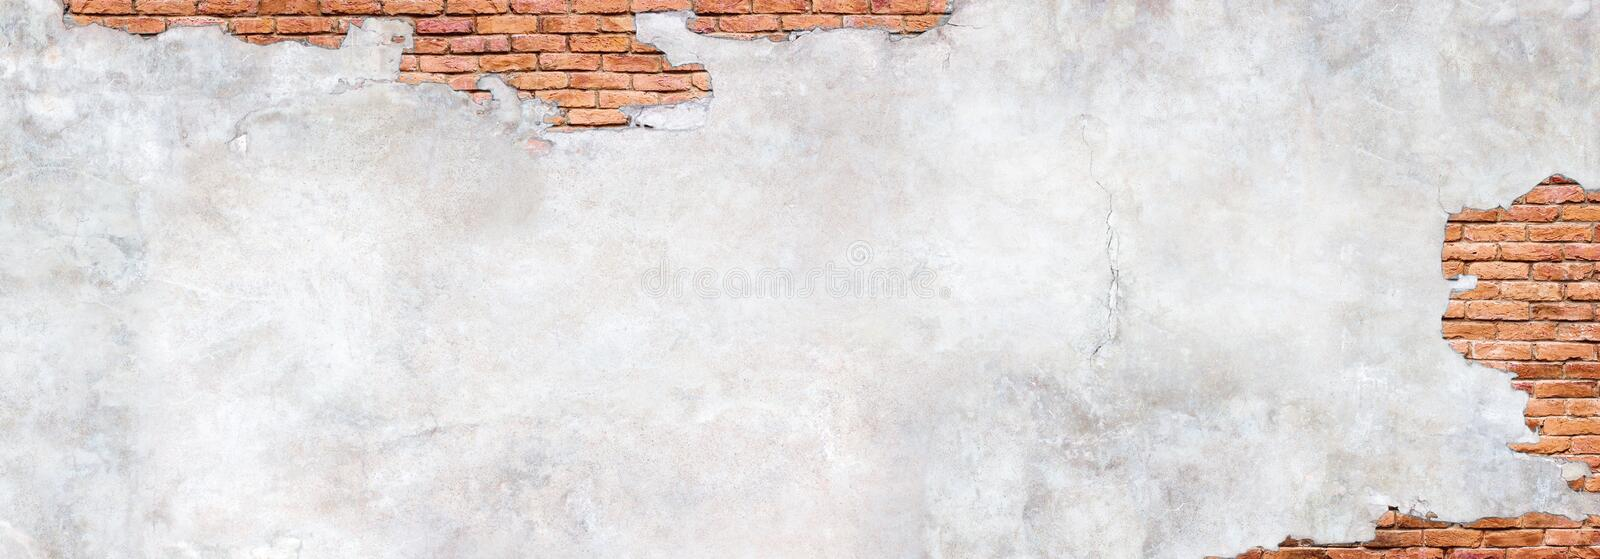 Antique brick wall under damaged plaster. Weathered brickwork texture with cracked concrete. Damaged plaster on brick wall background. Brickwork under crumbling stock image